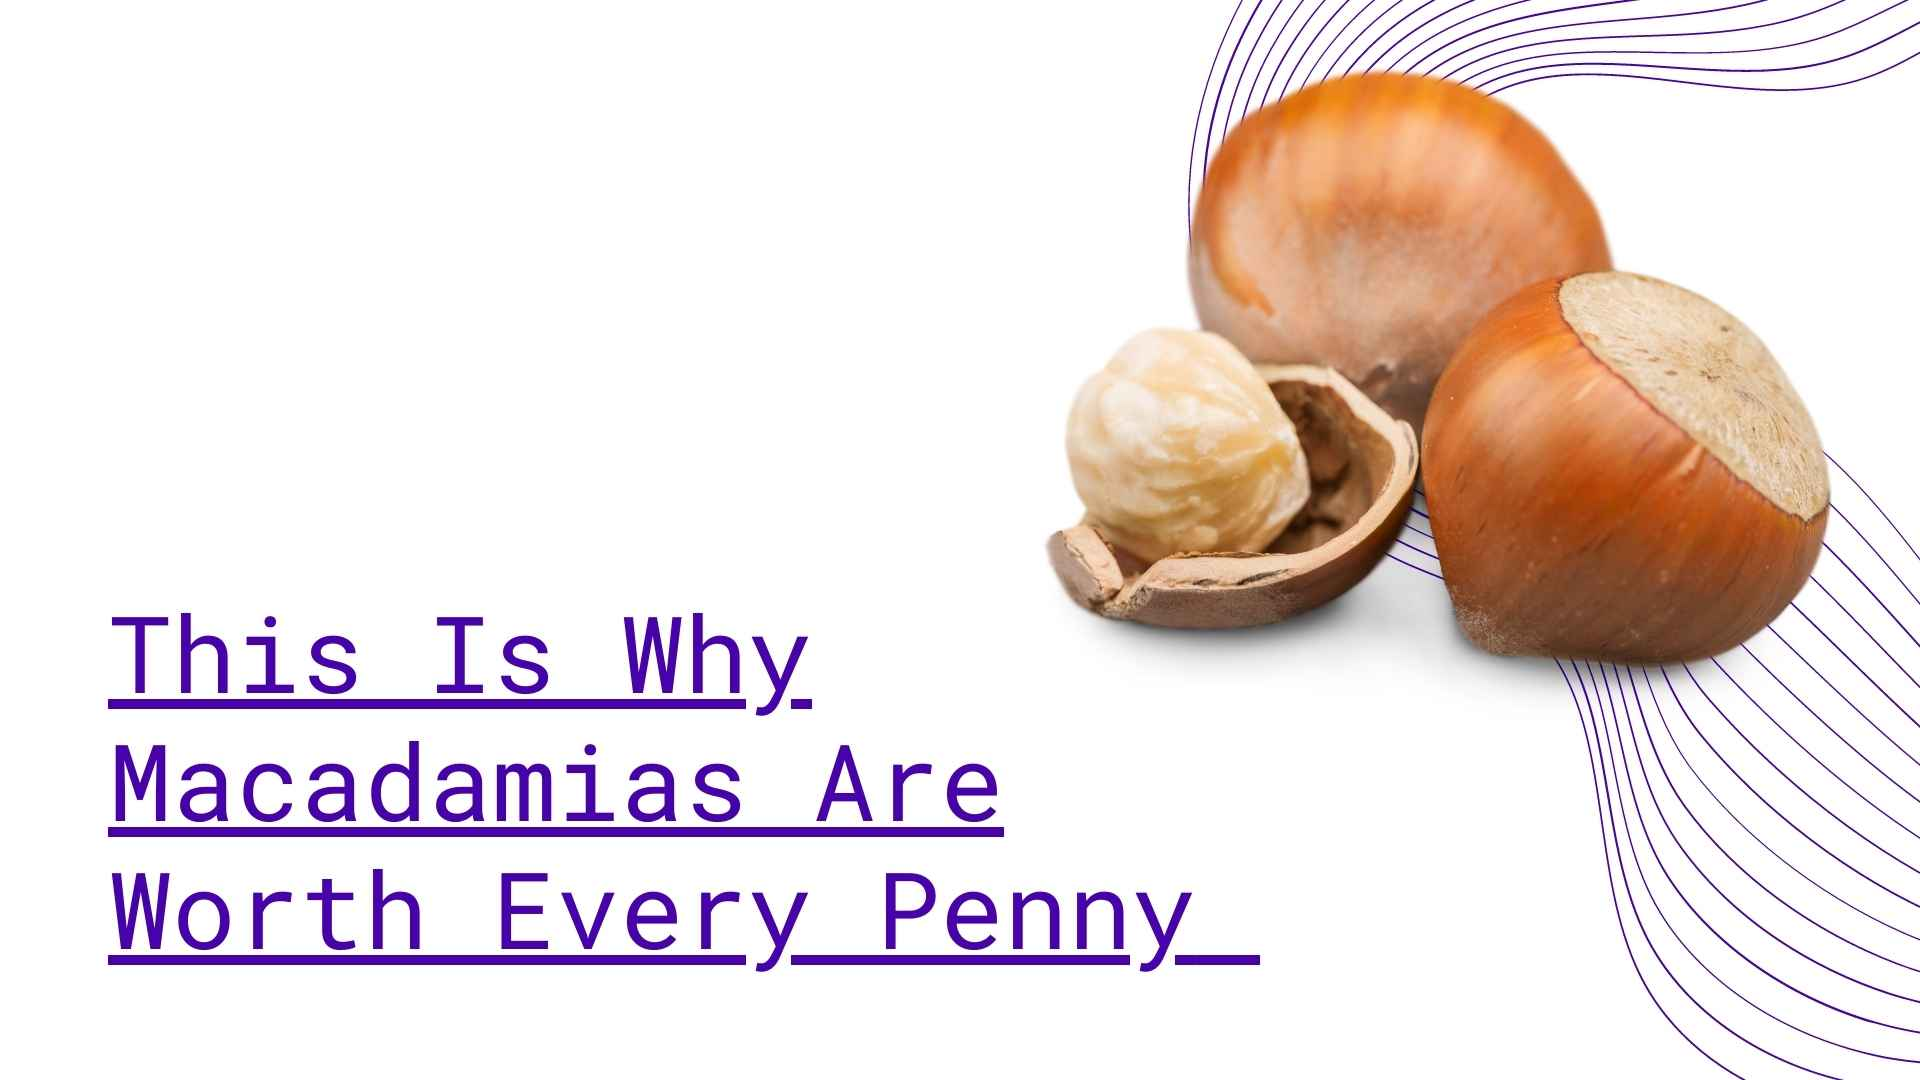 This Is Why Macadamias Are Worth Every Penny